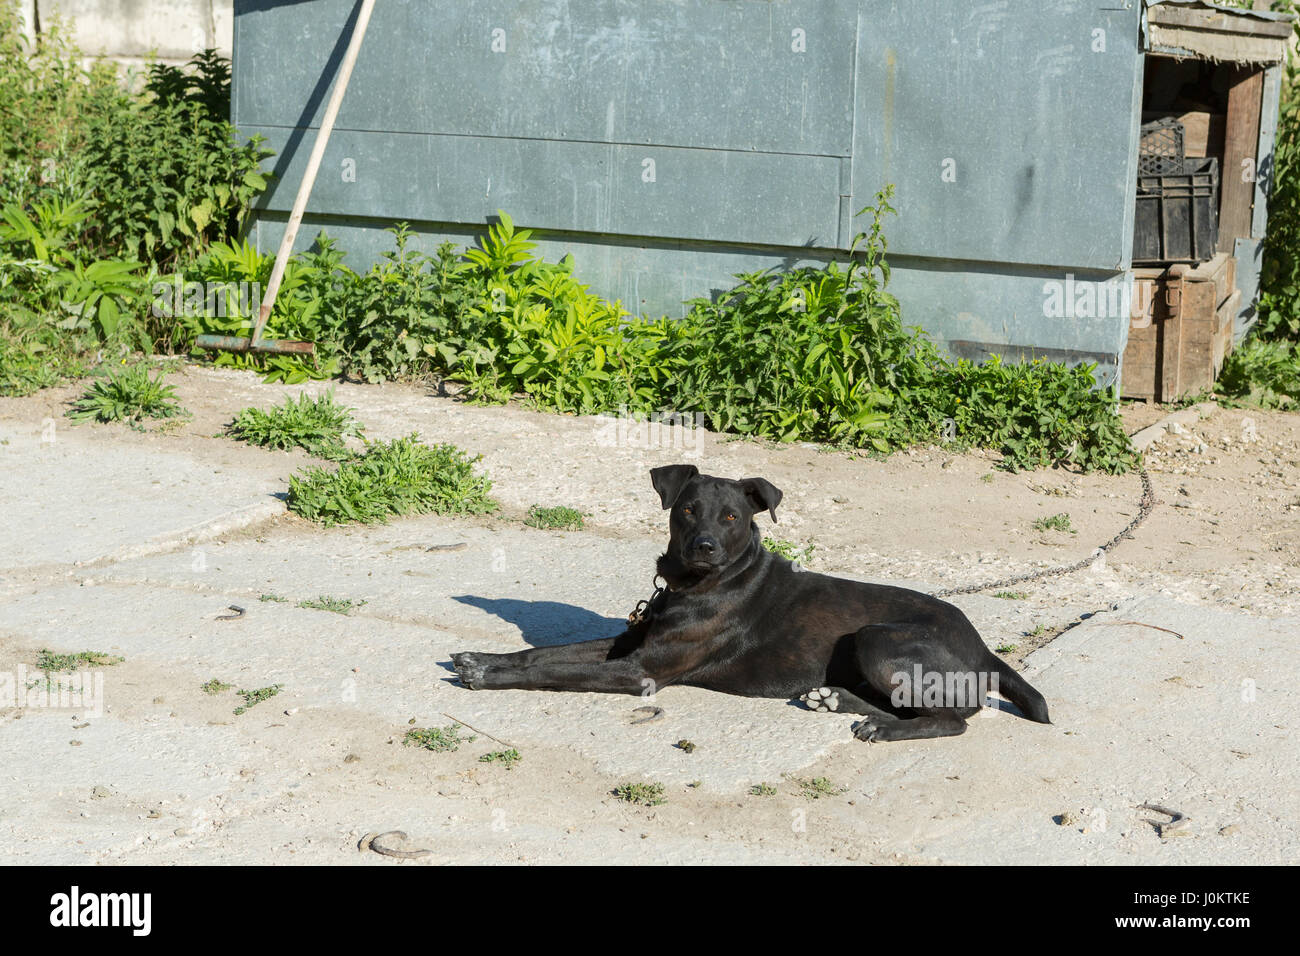 Black dog on the chain near booth - Stock Image